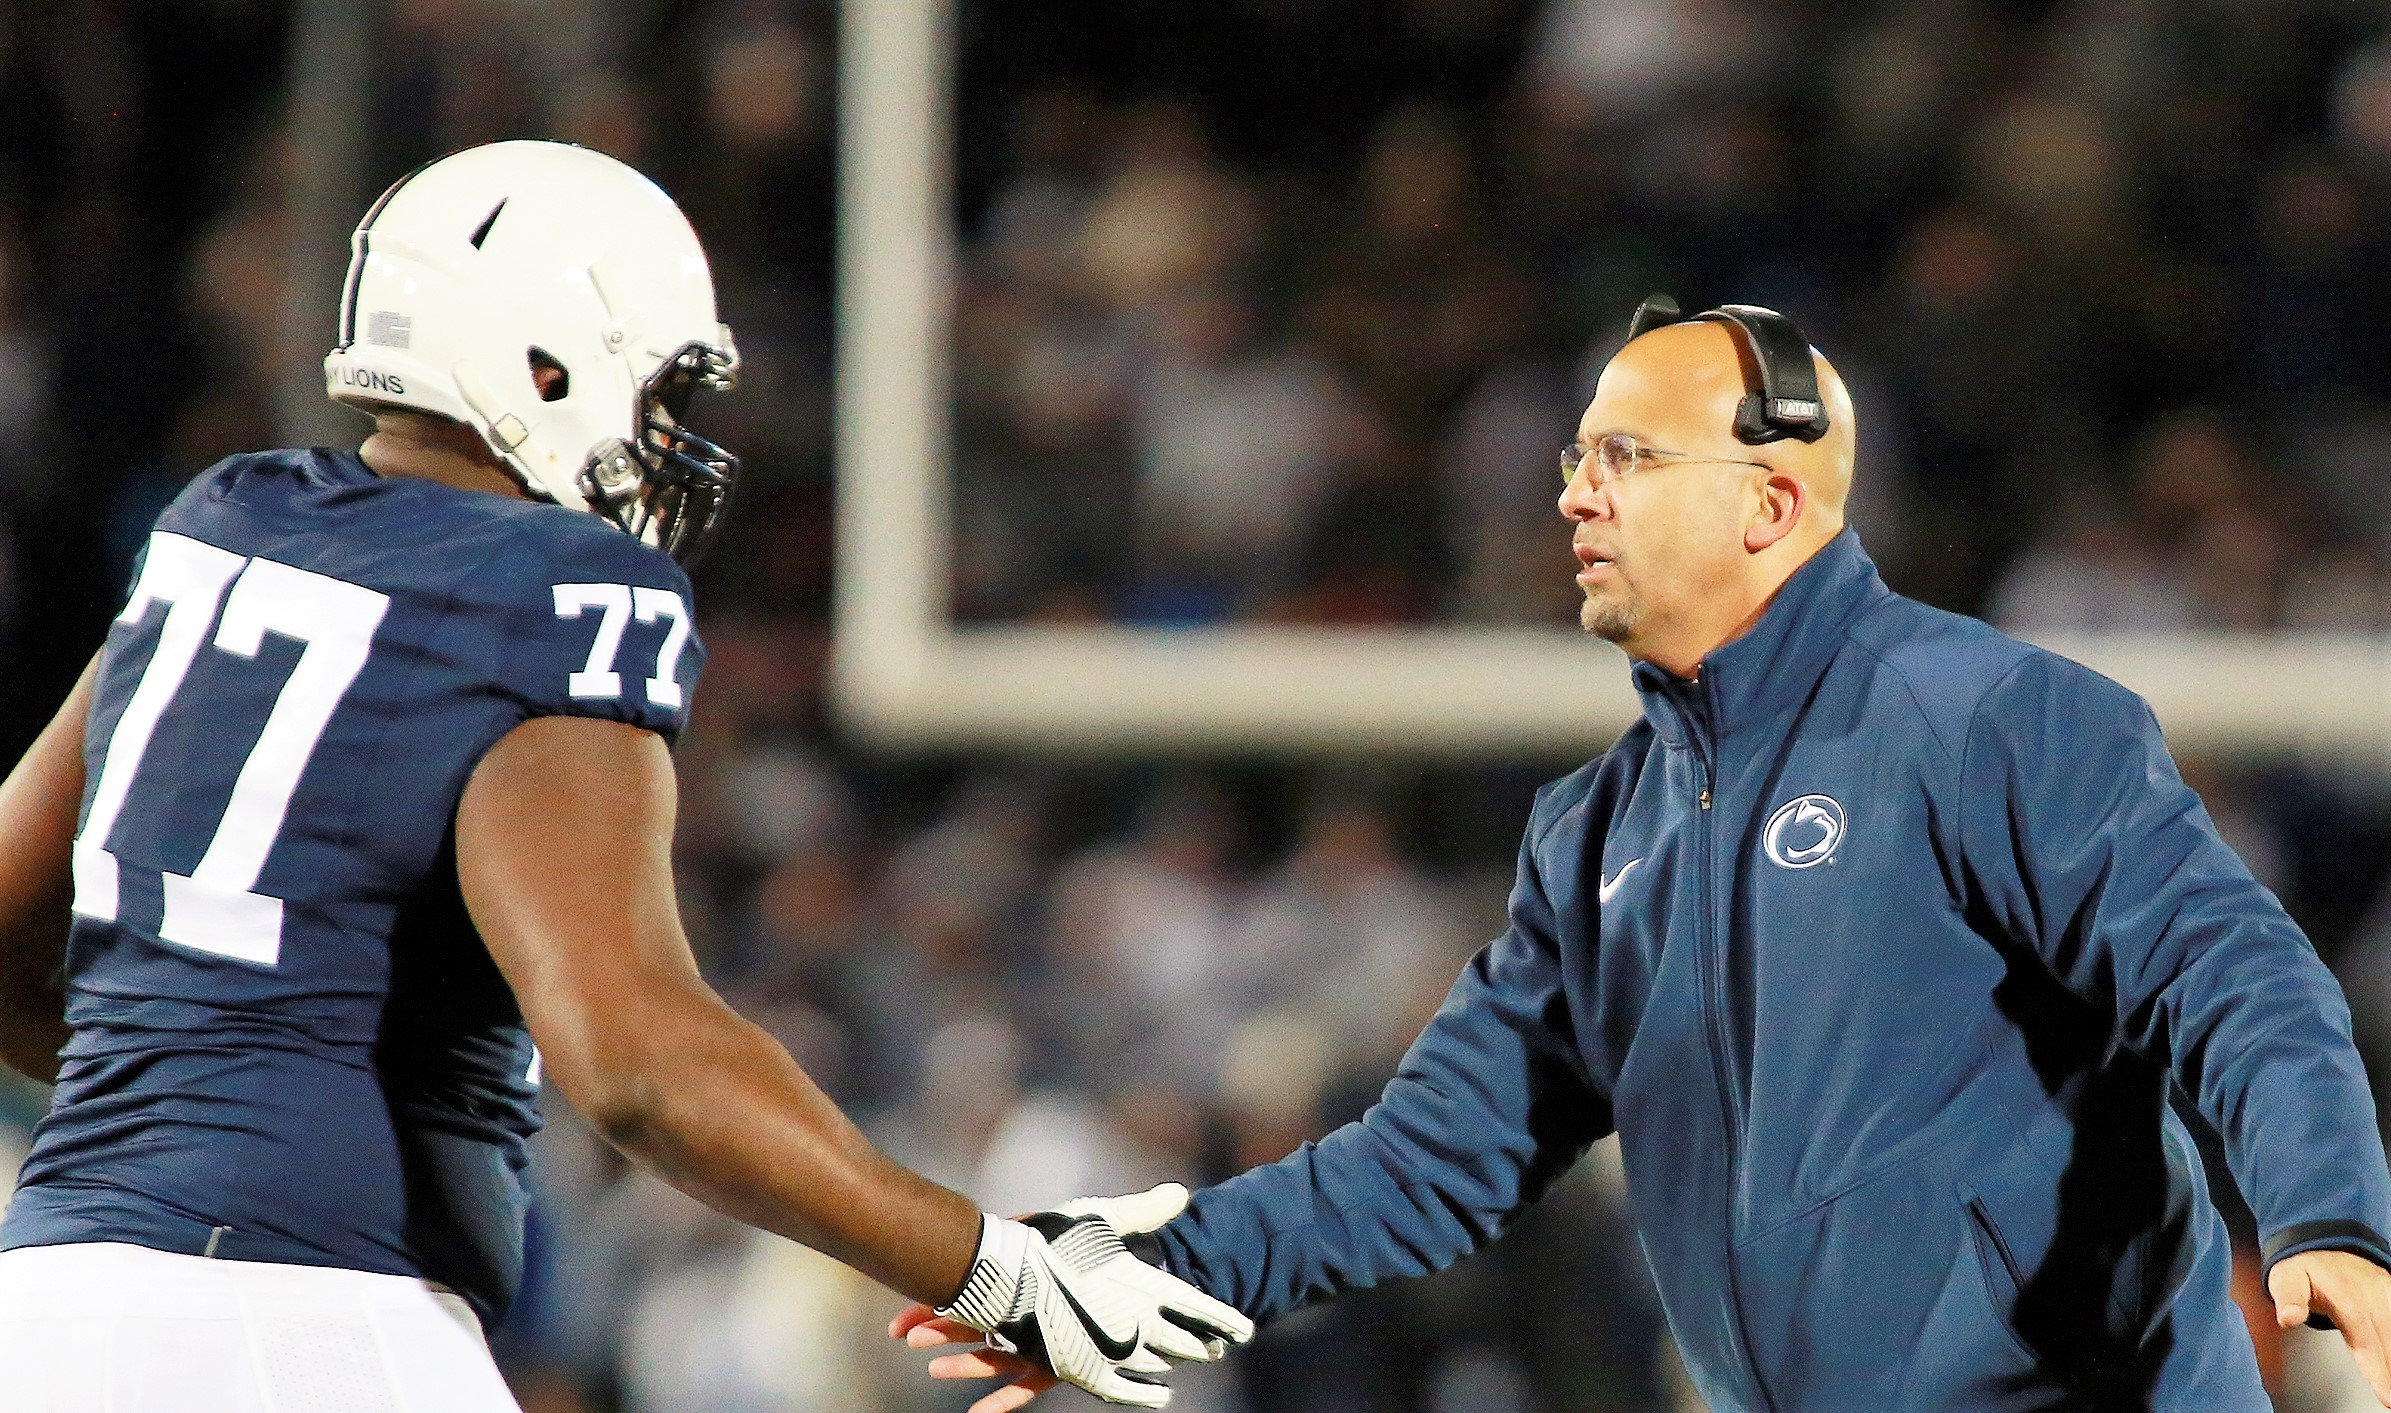 Penn State's Franklin Named Sporting News Coach of the Year